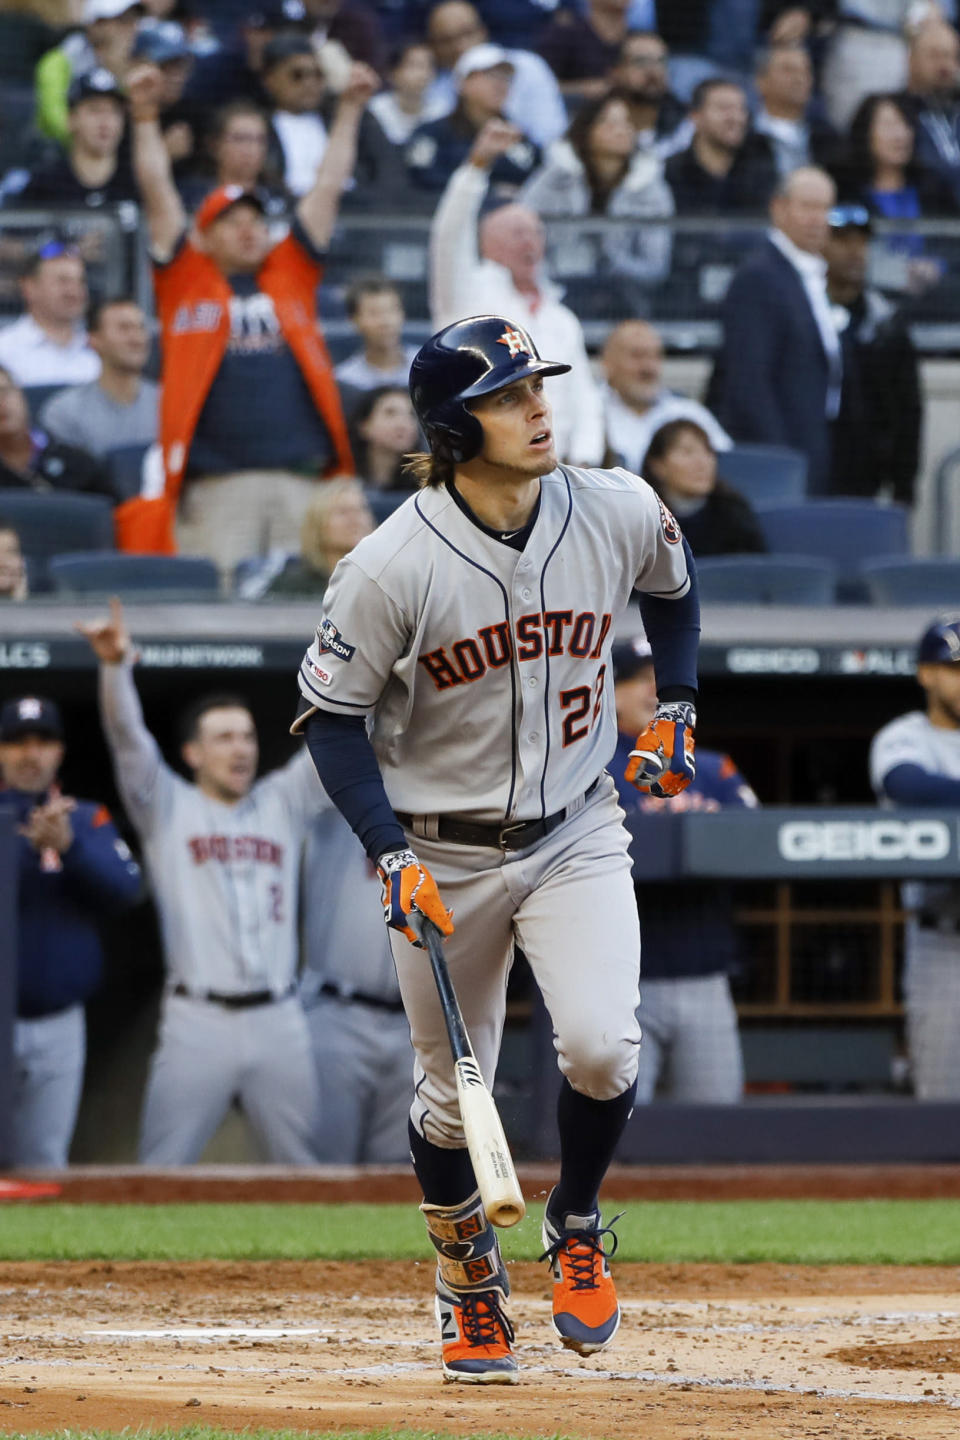 Houston Astros' Josh Reddick watches his home run against the New York Yankees during the second inning in Game 3 of baseball's American League Championship Series Tuesday, Oct. 15, 2019, in New York. (AP Photo/Matt Slocum)